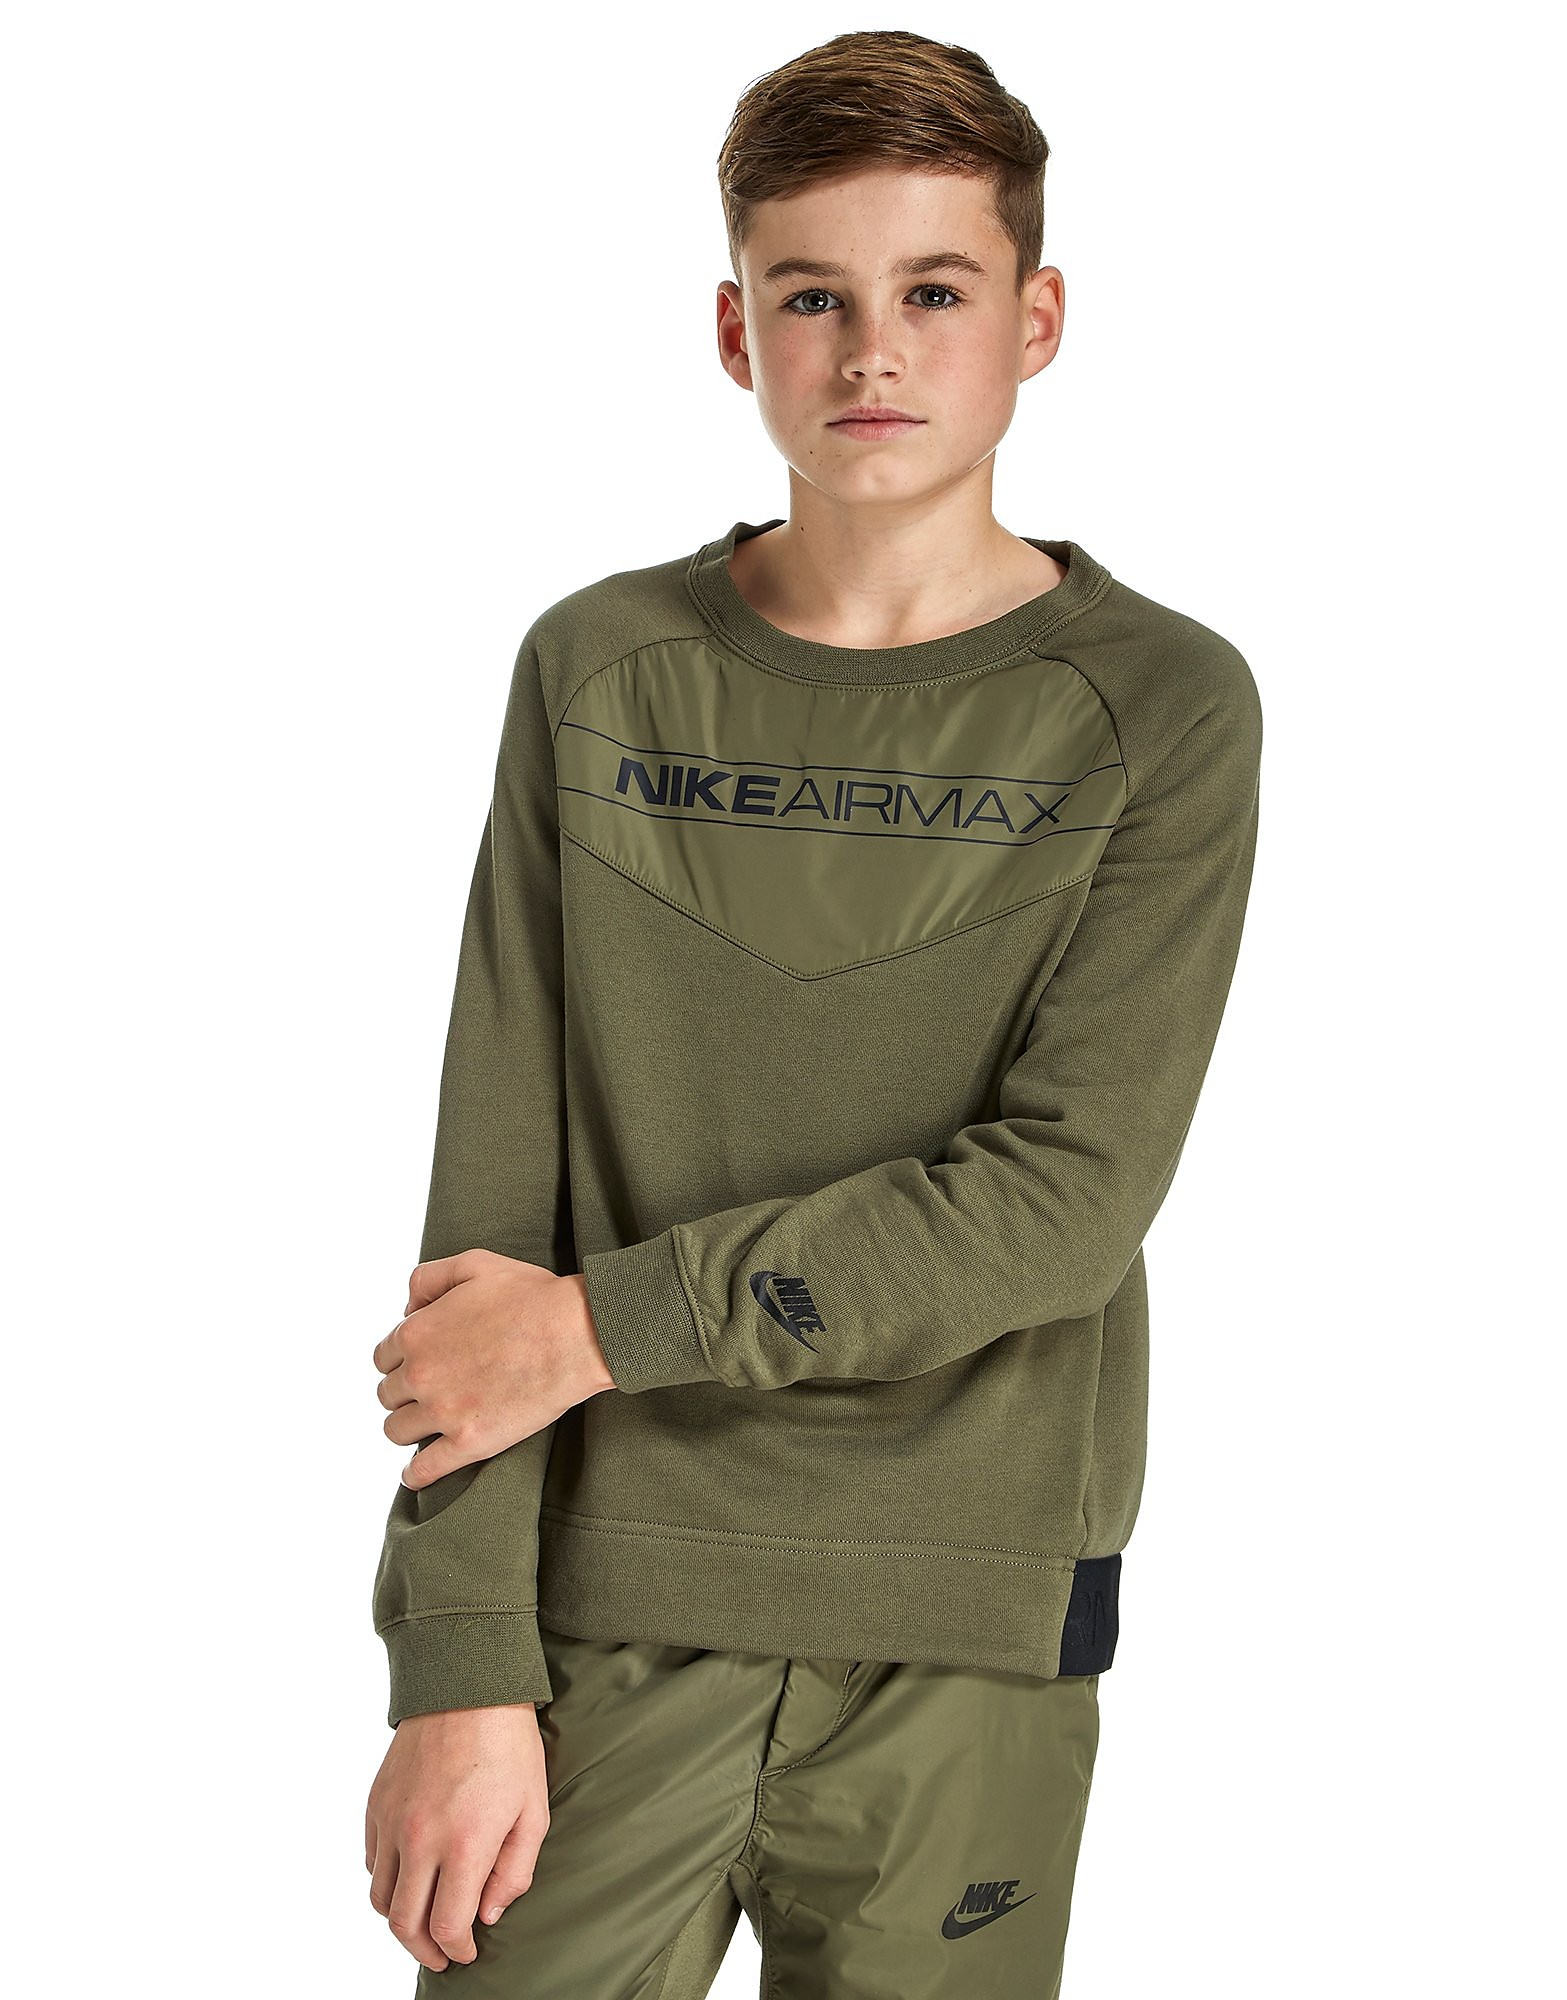 Nike Air Max Crew Sweatshirt Junior